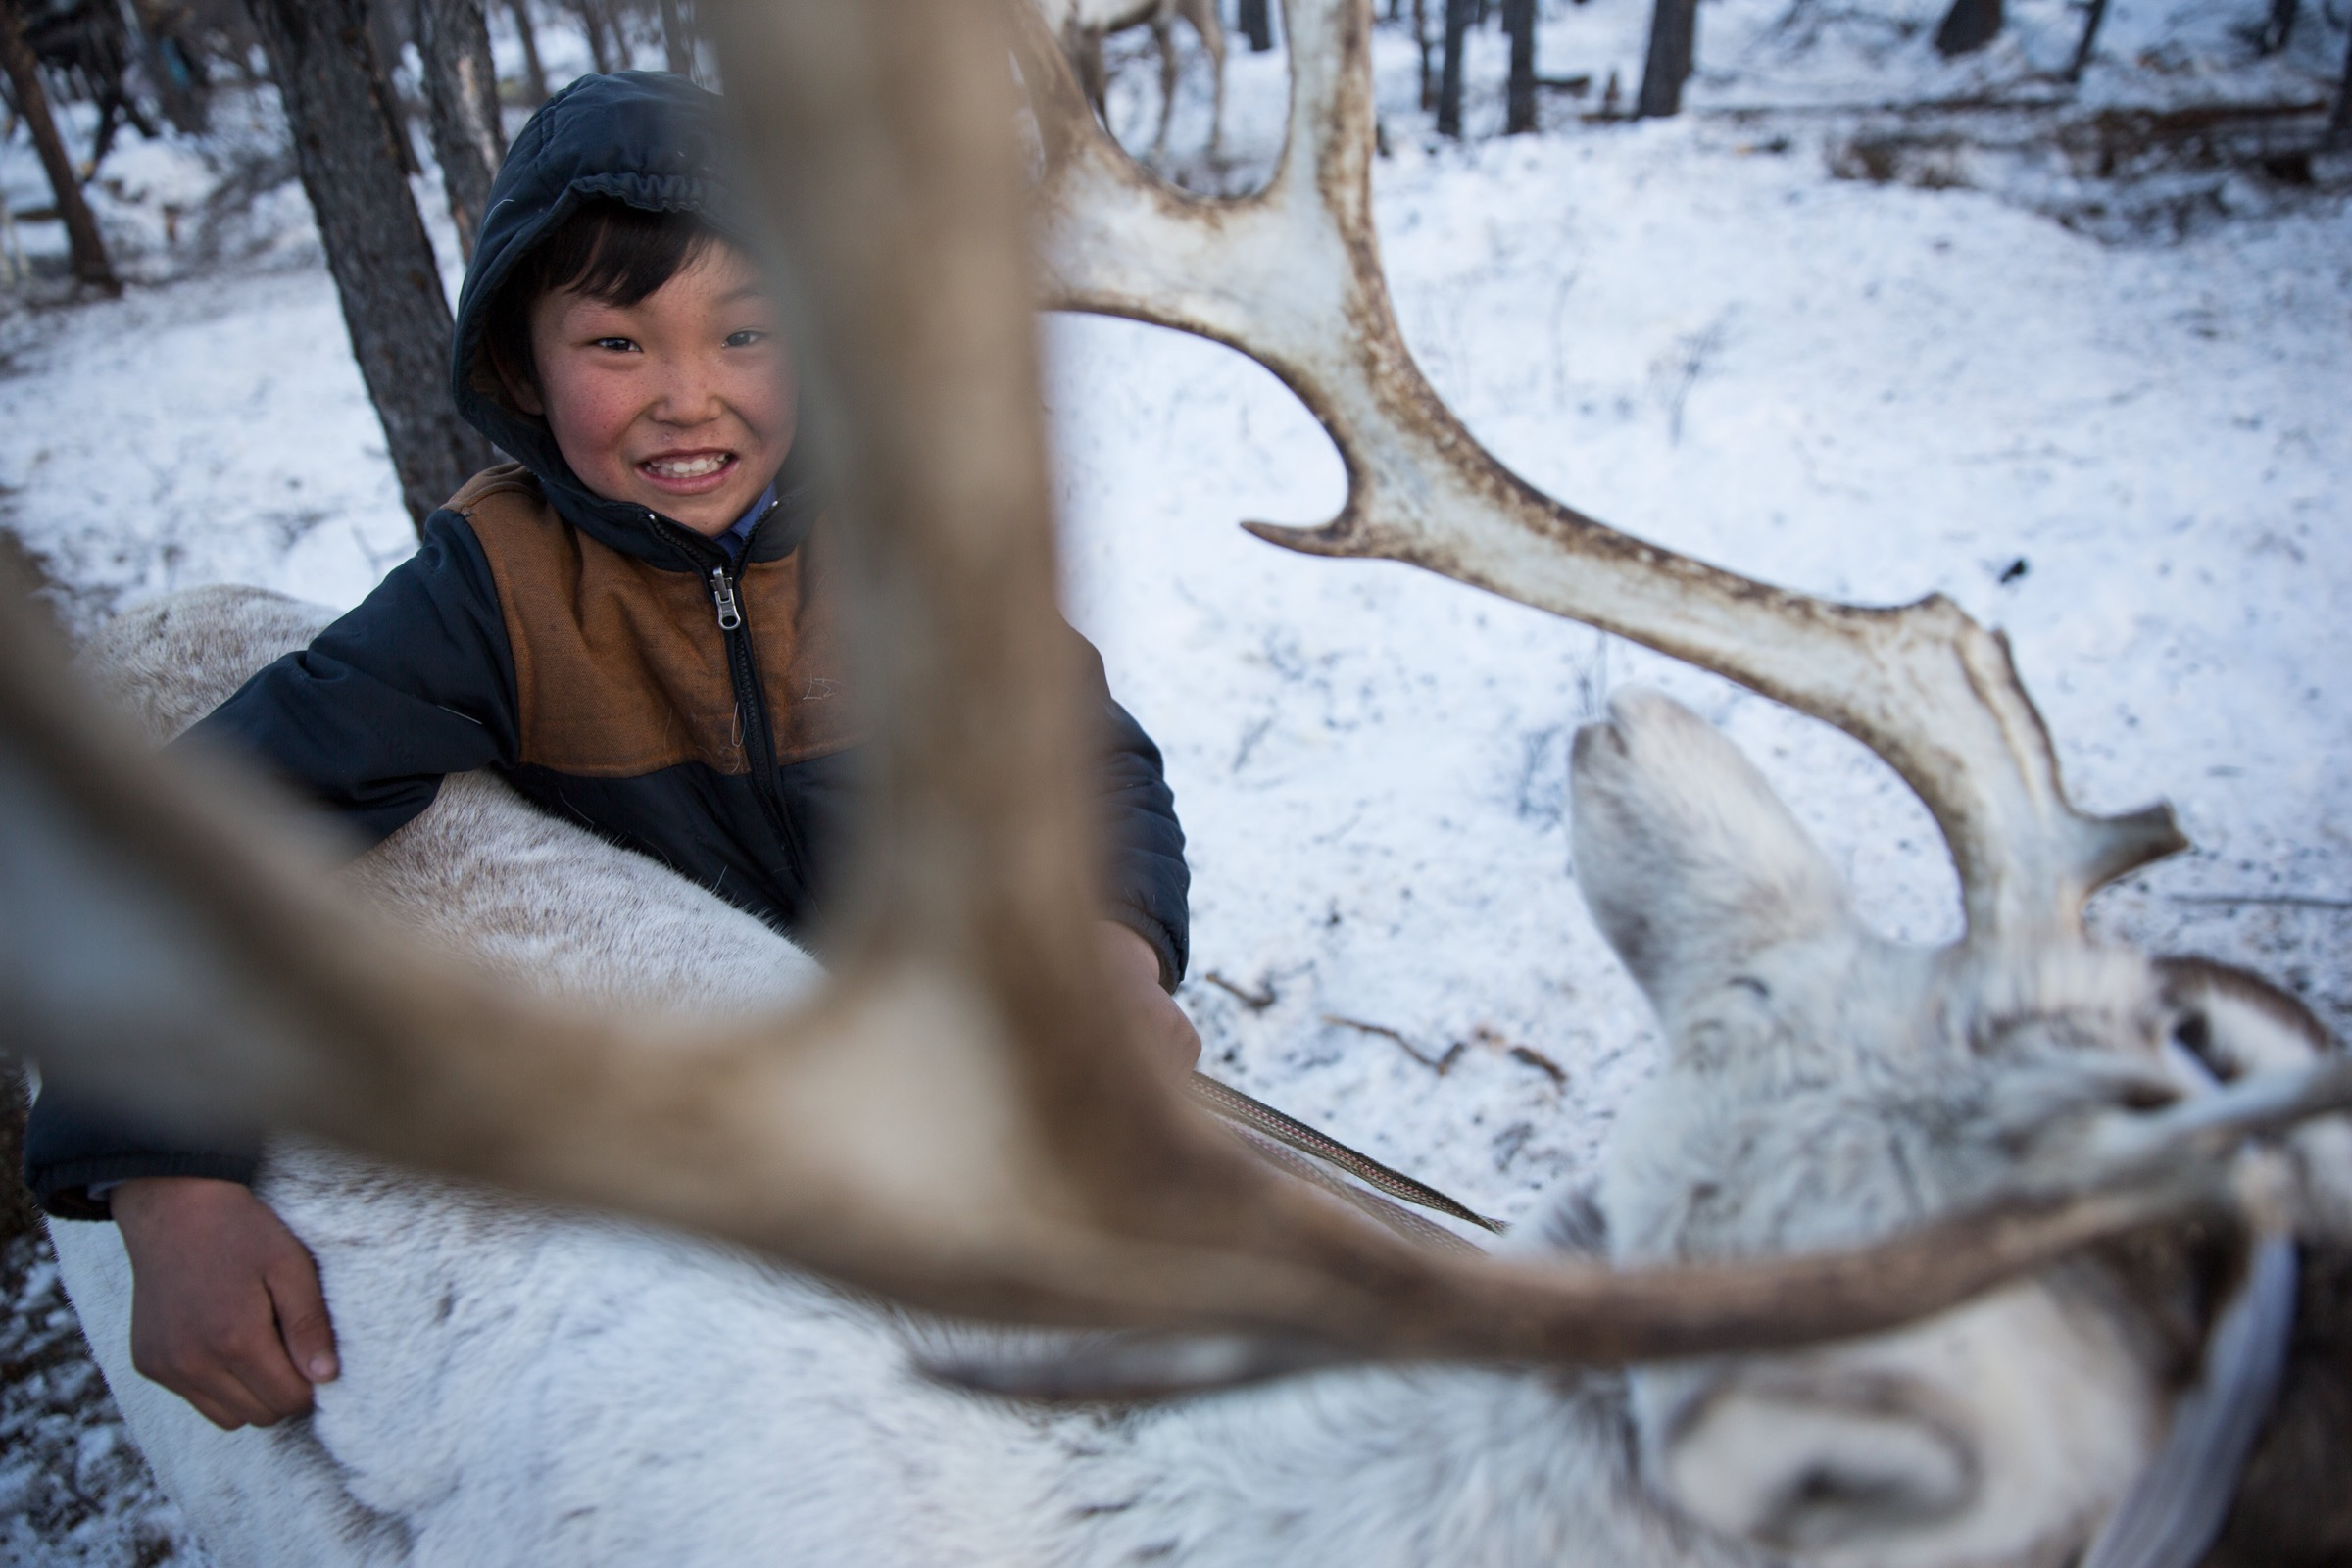 Reindeer are at the center of Dukha life and culture. Since the animals are trained to provide transportation as well as milk, the reindeer are tame enough for Dukha children, like this boy, to play with them.